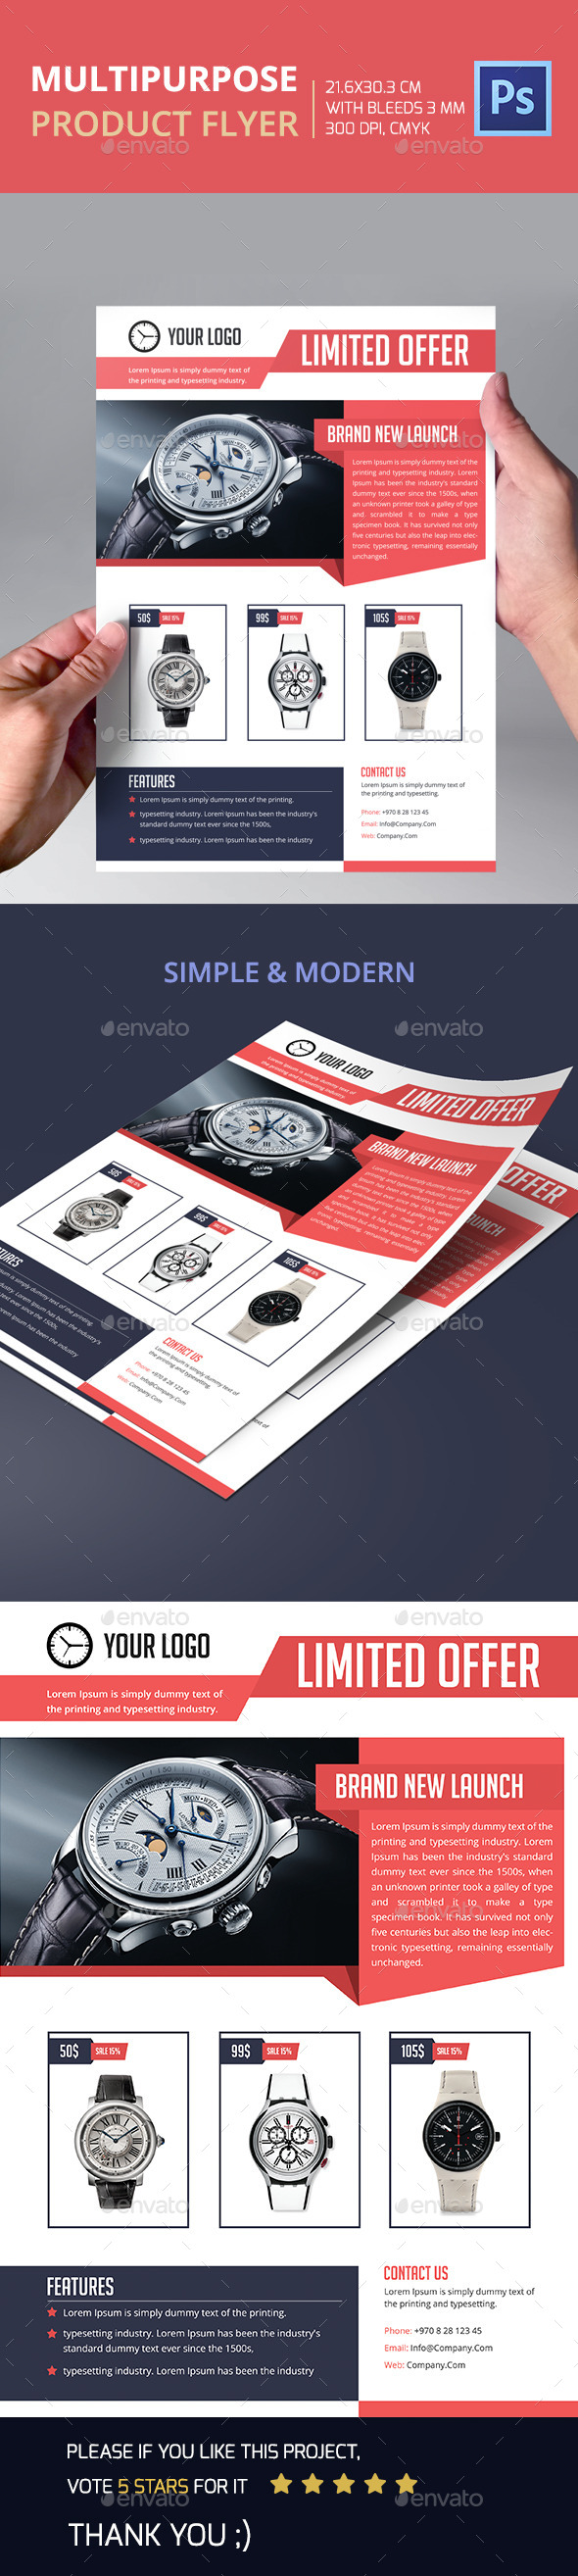 GraphicRiver Multipurpose Product Flyer 11863099